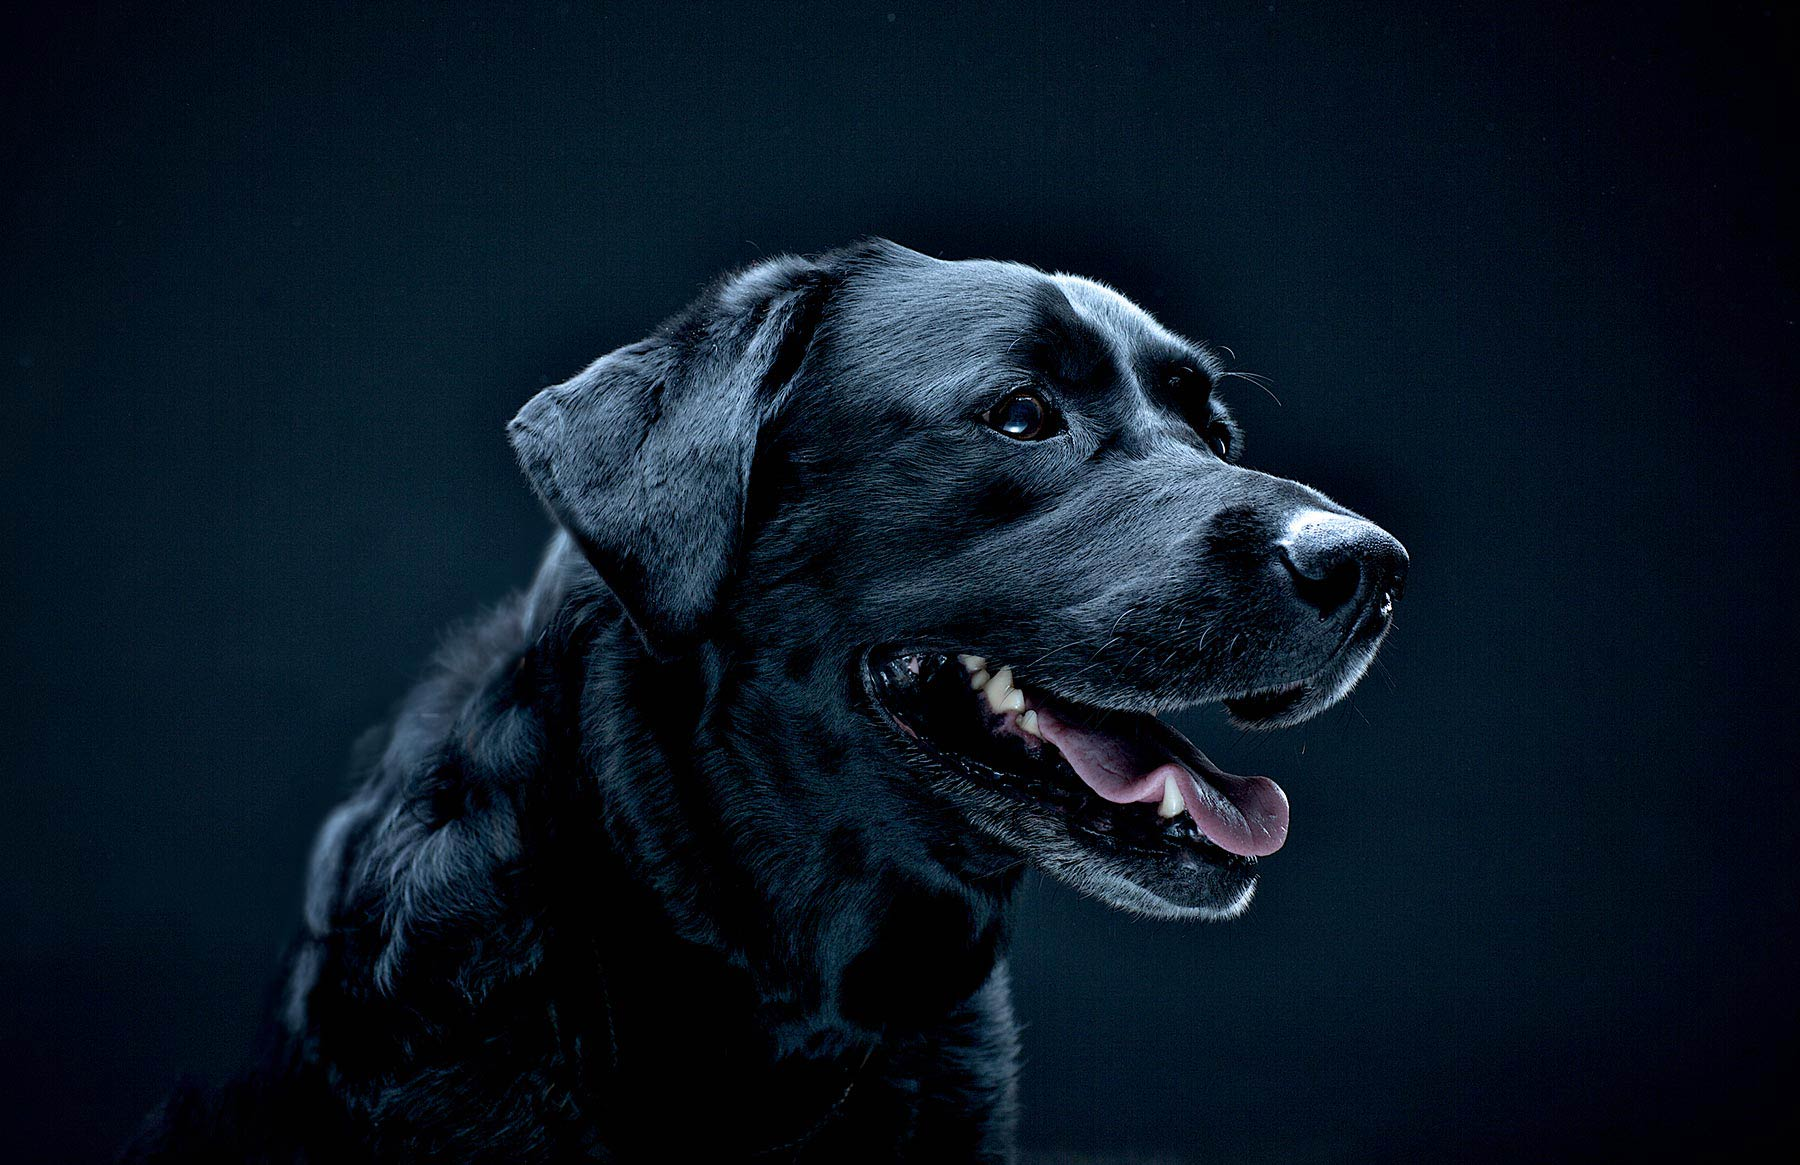 A-studio-portrait-of-a-Black-Labrador-dog-against-a-black-background